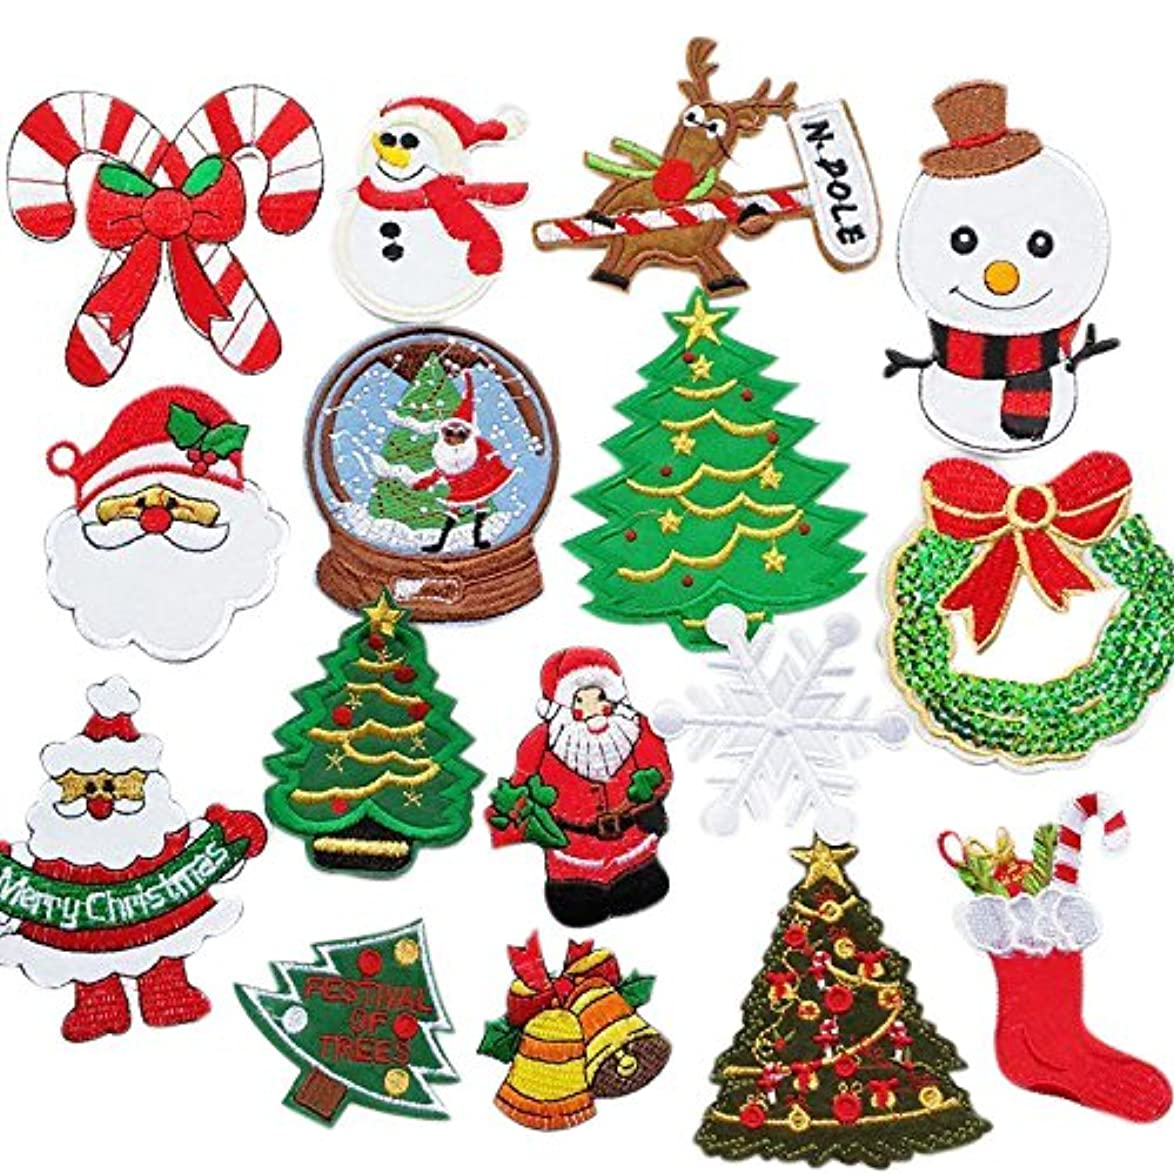 Chenkou Craft 16pcs Random Merry Christmas Sew-on & Iron-on Patch Santa Tree Snowman Beer Jingle Bell Claus Embroidered Patches (Christmas Patch) svflunggiahbzuz7